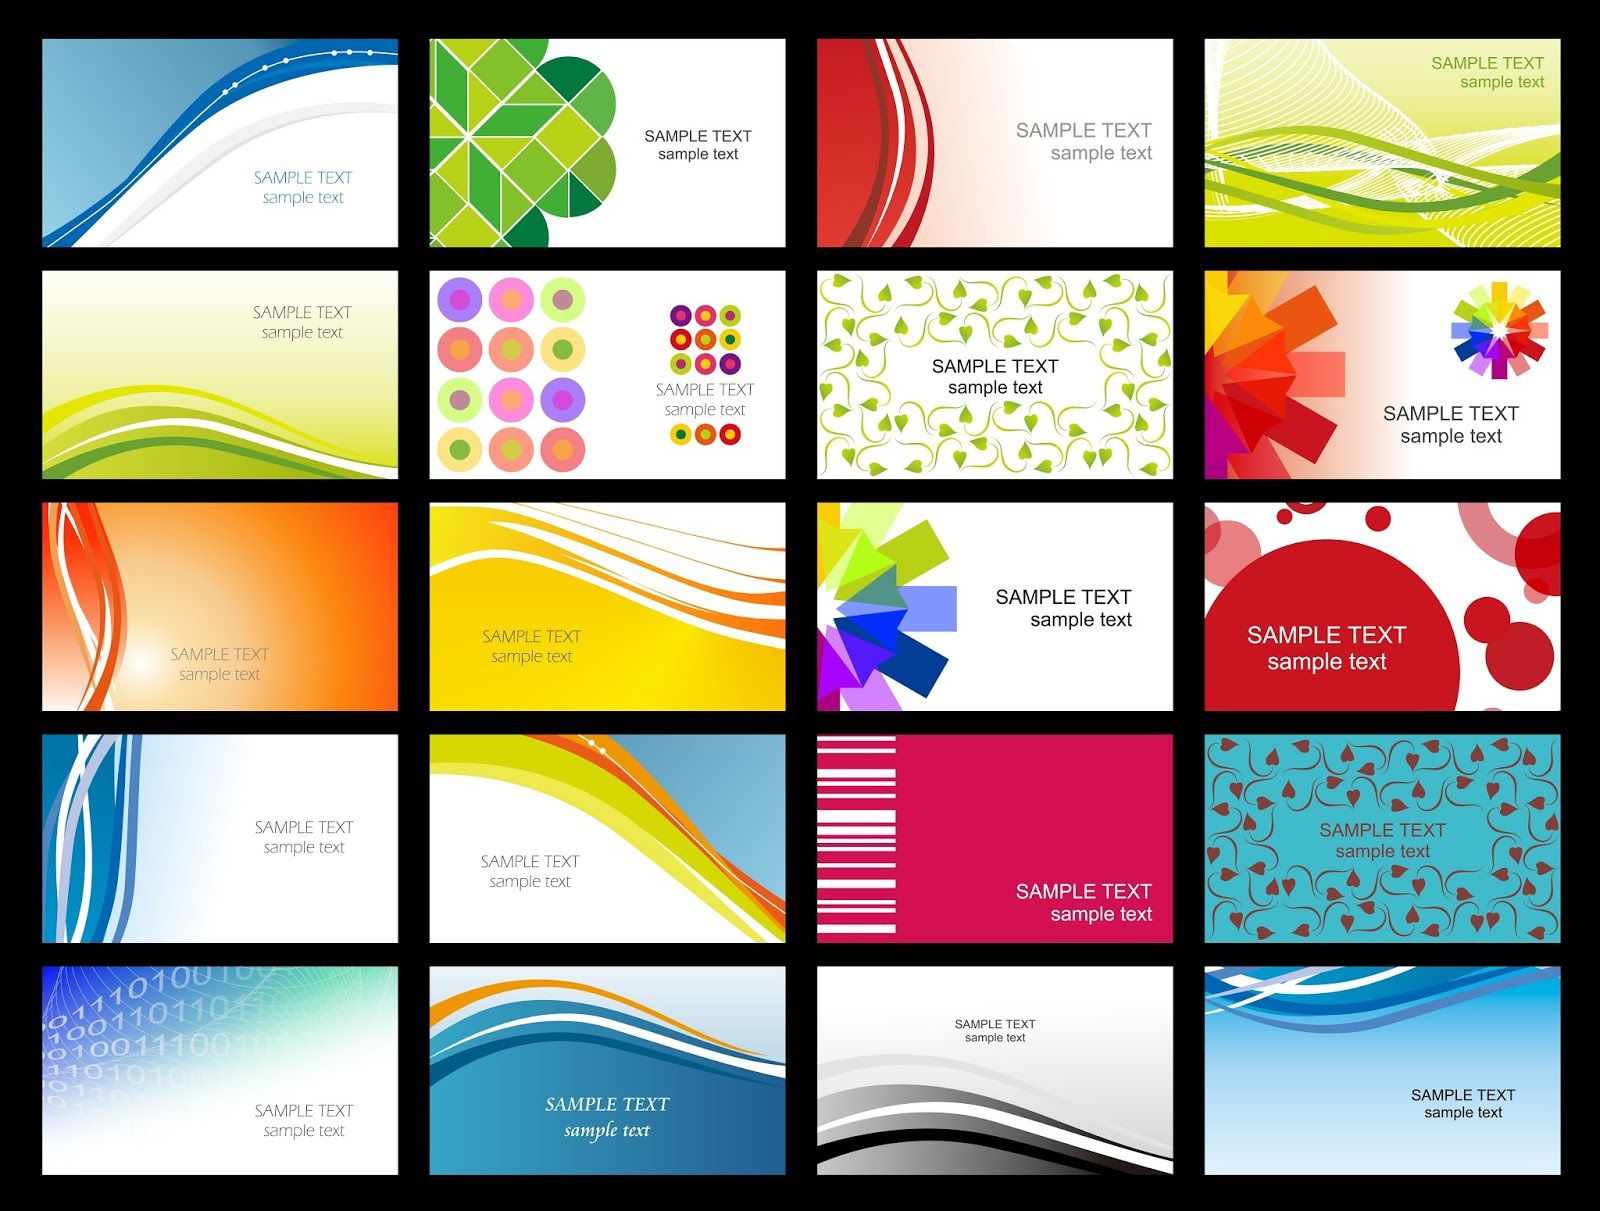 009 Excellent Simple Busines Card Template Microsoft Word Picture Full